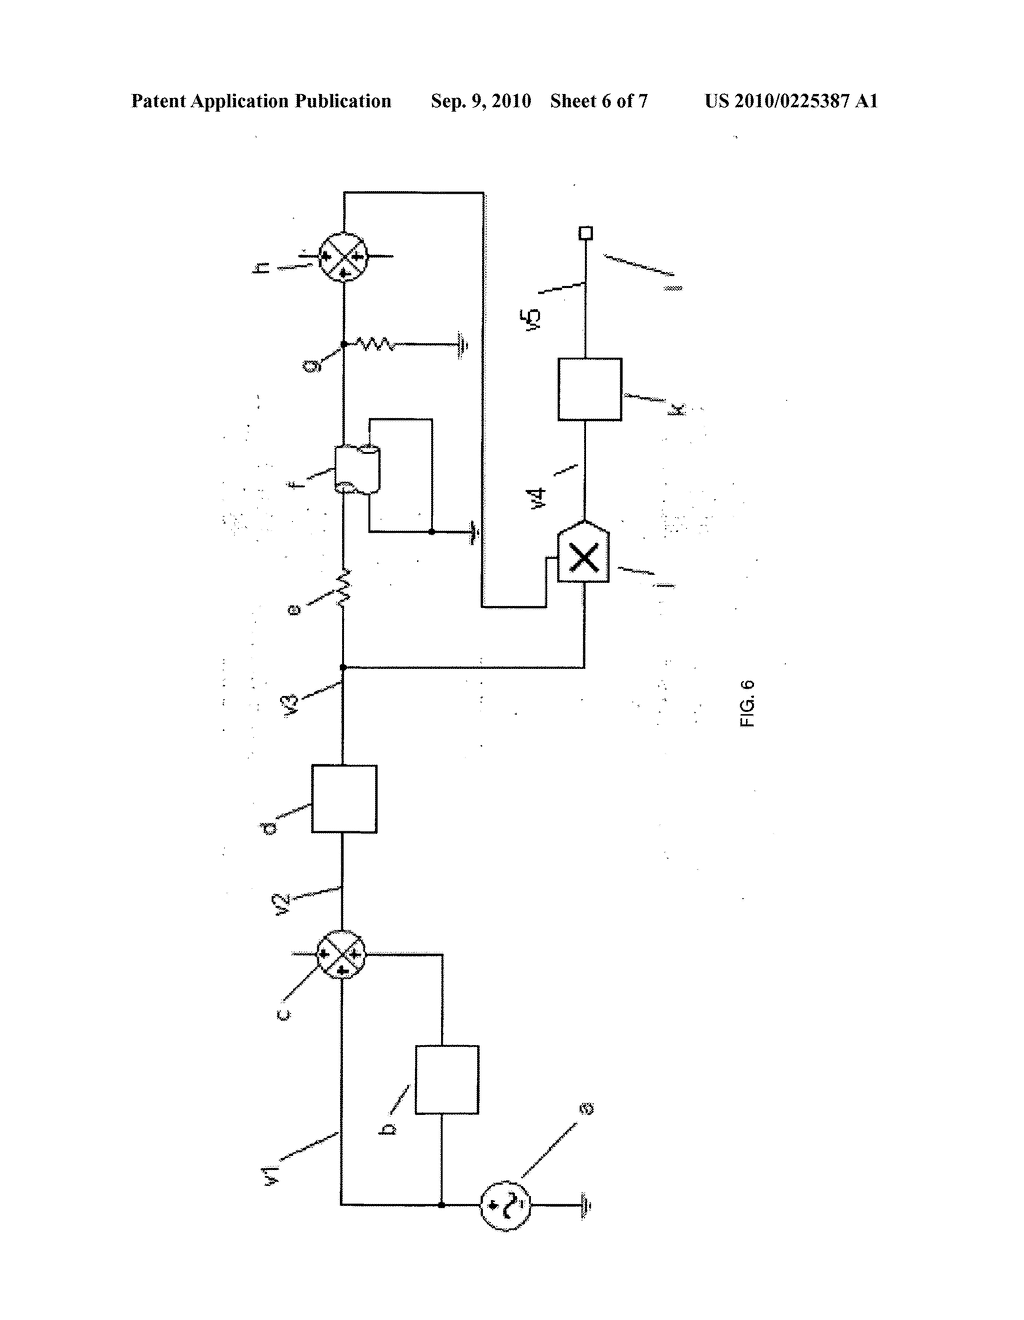 Fm Demodulator Apparatus And Method Includes An Amplitude Locked Amplifier Circuit Loop A Delay Line Quadrature Detector Without The Use Of Limited Diagram